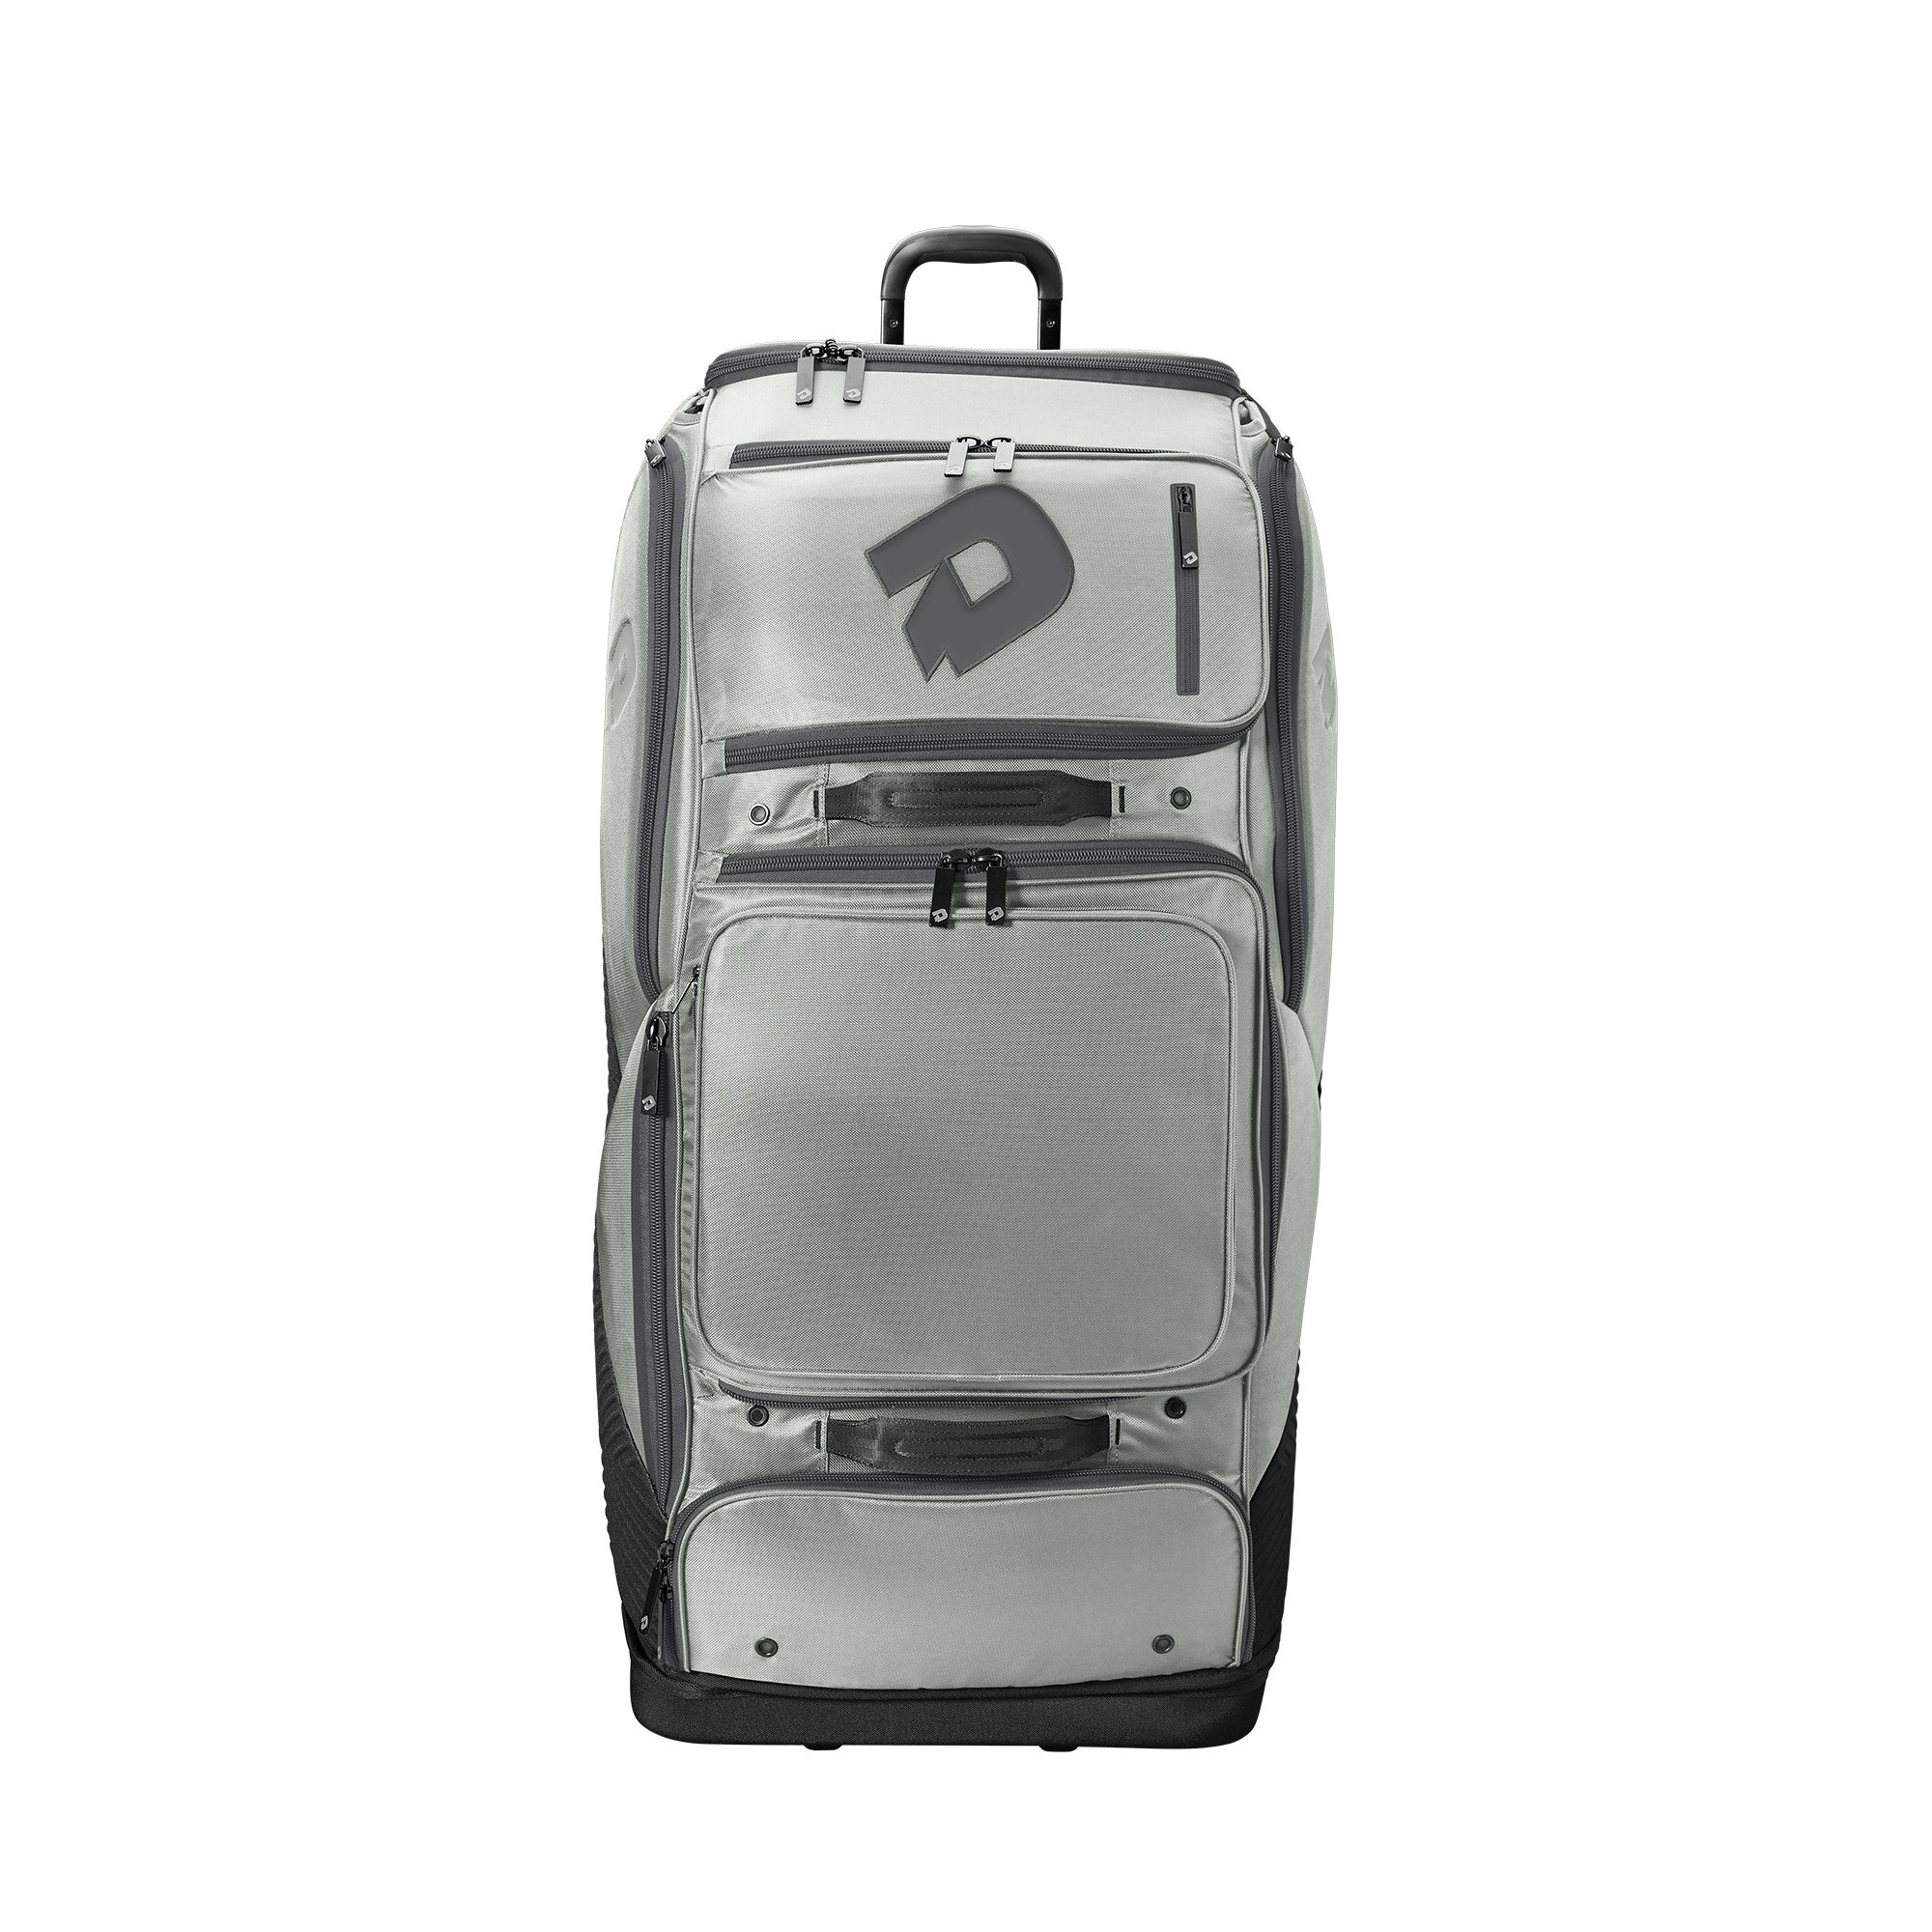 DeMarini Special Ops Spectre Wheeled Bag - Silver